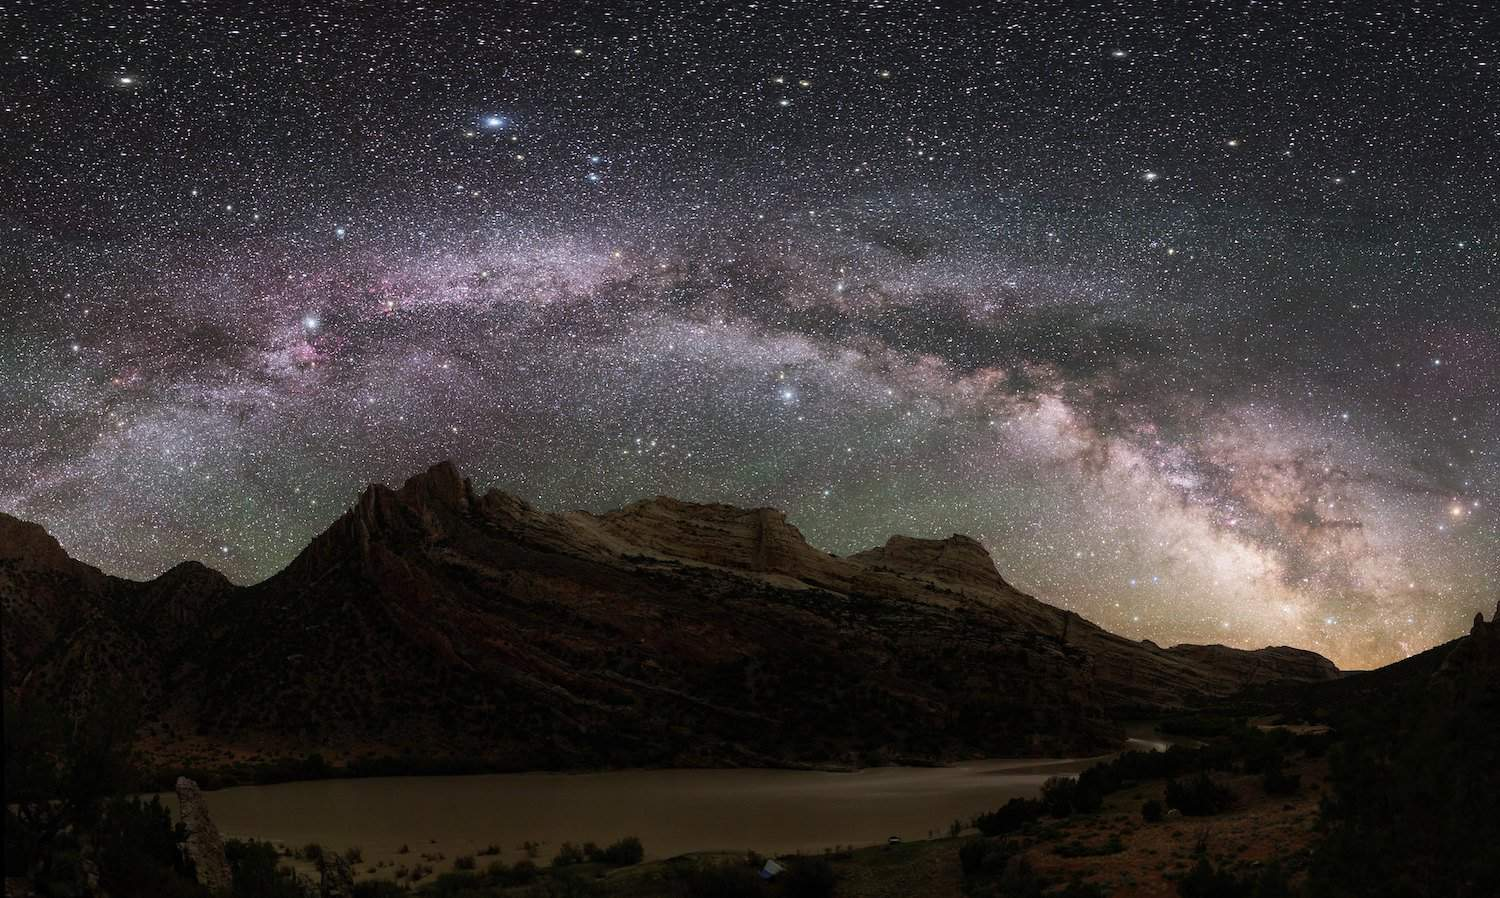 Stargazing in Colorado - Dinosaur National Monument - Dan Duriscoe for NPS